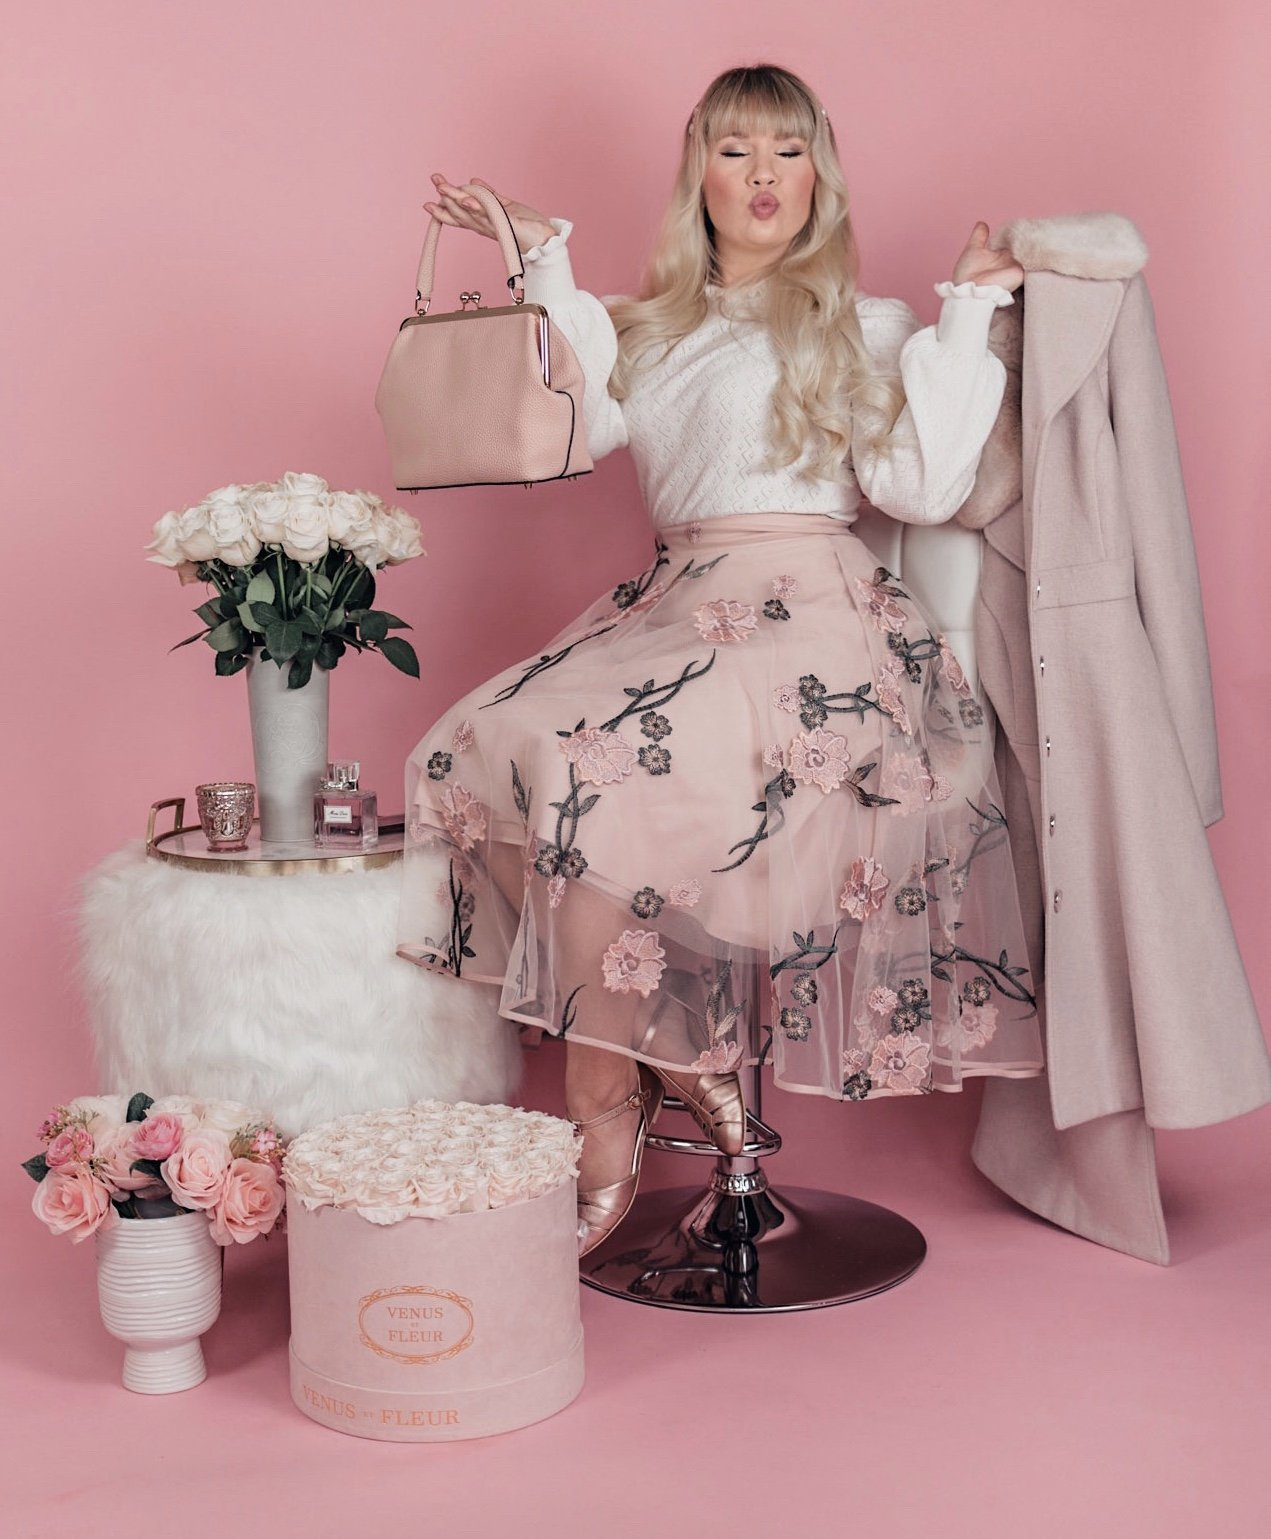 Elizabeth Hugen of Lizzie in Lace shares her pink feminine outfit in her April 2020 Month in Review